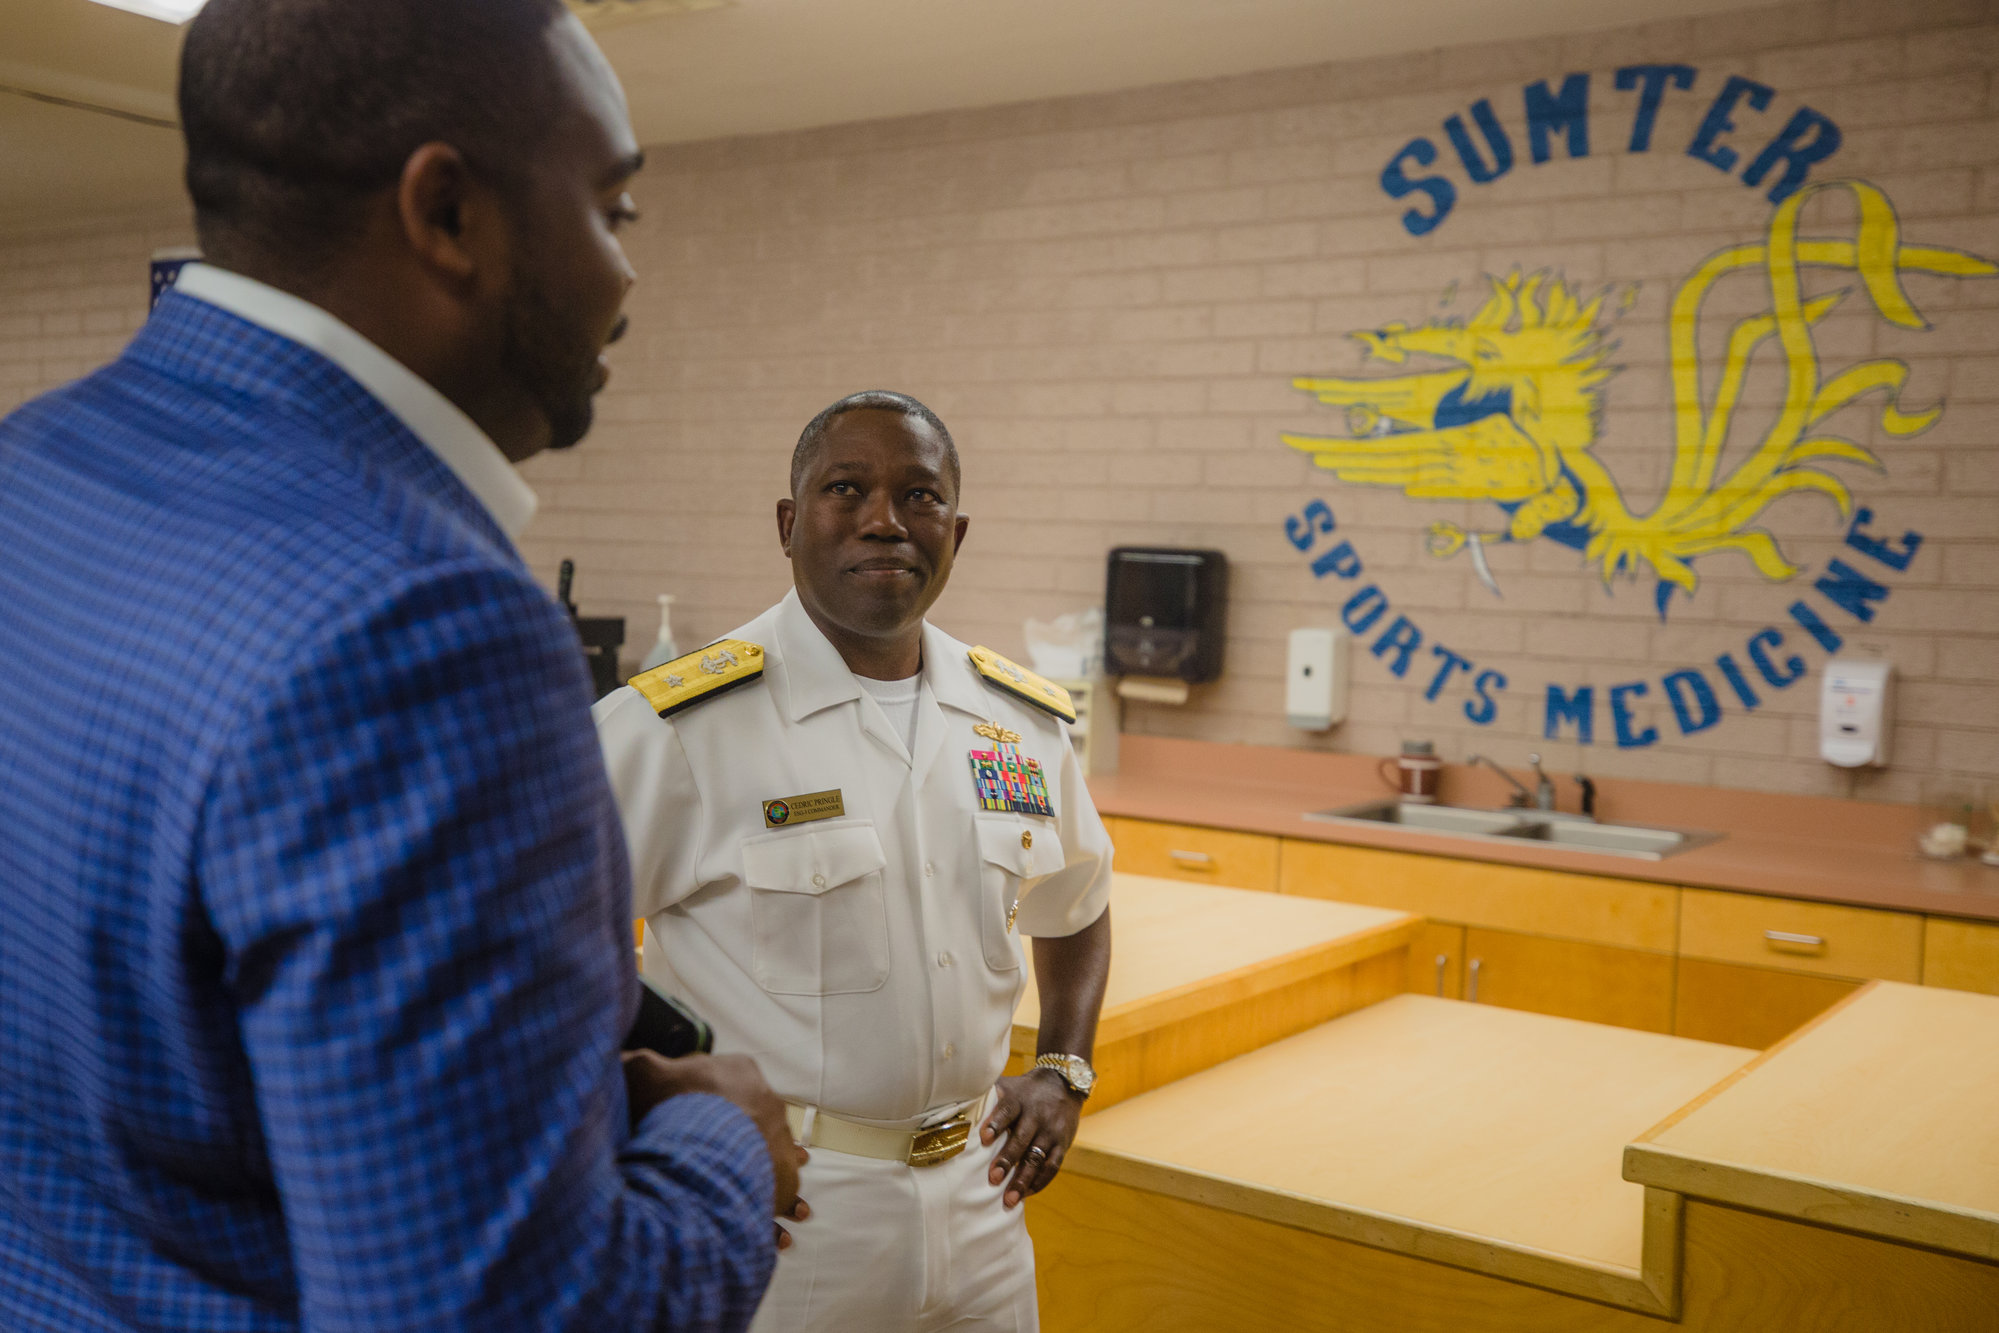 Rear Adm. Cedric Pringle talks with SHS Principal Nicholas Pearson on Monday during his visit to Sumter.